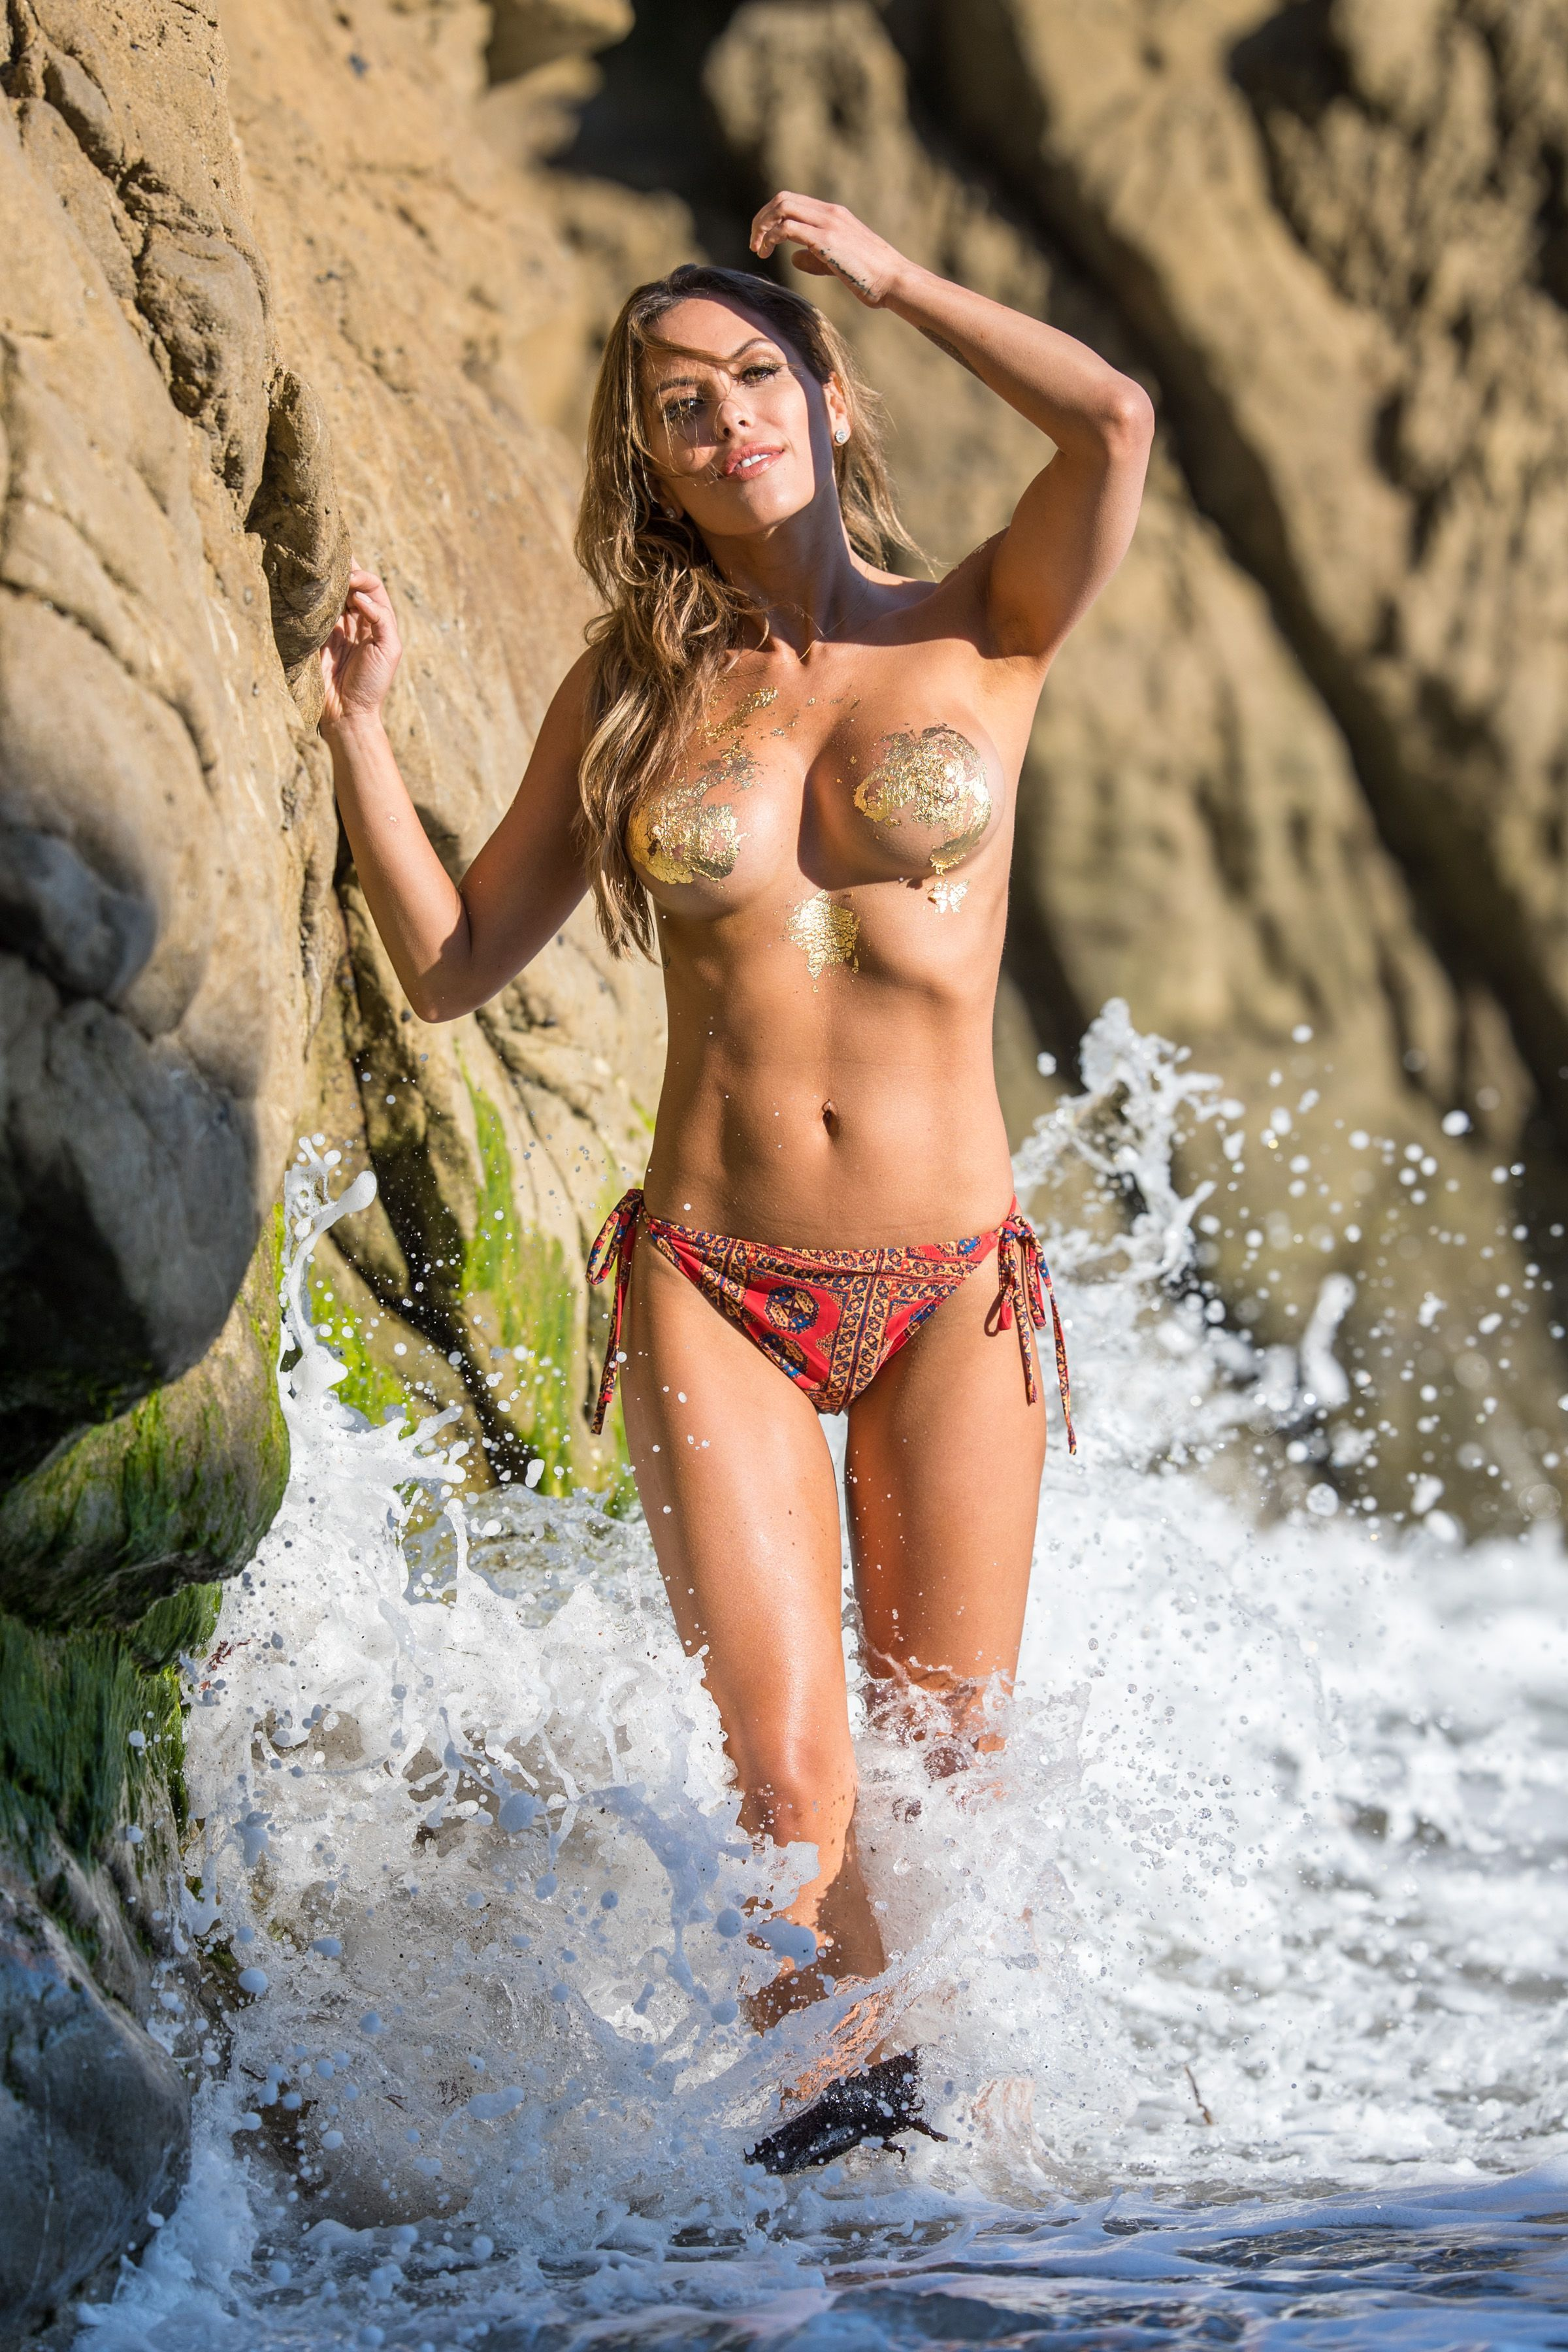 Brittney-Palmer-Sexy-Topless-9-thefappeningblog.com_.jpg